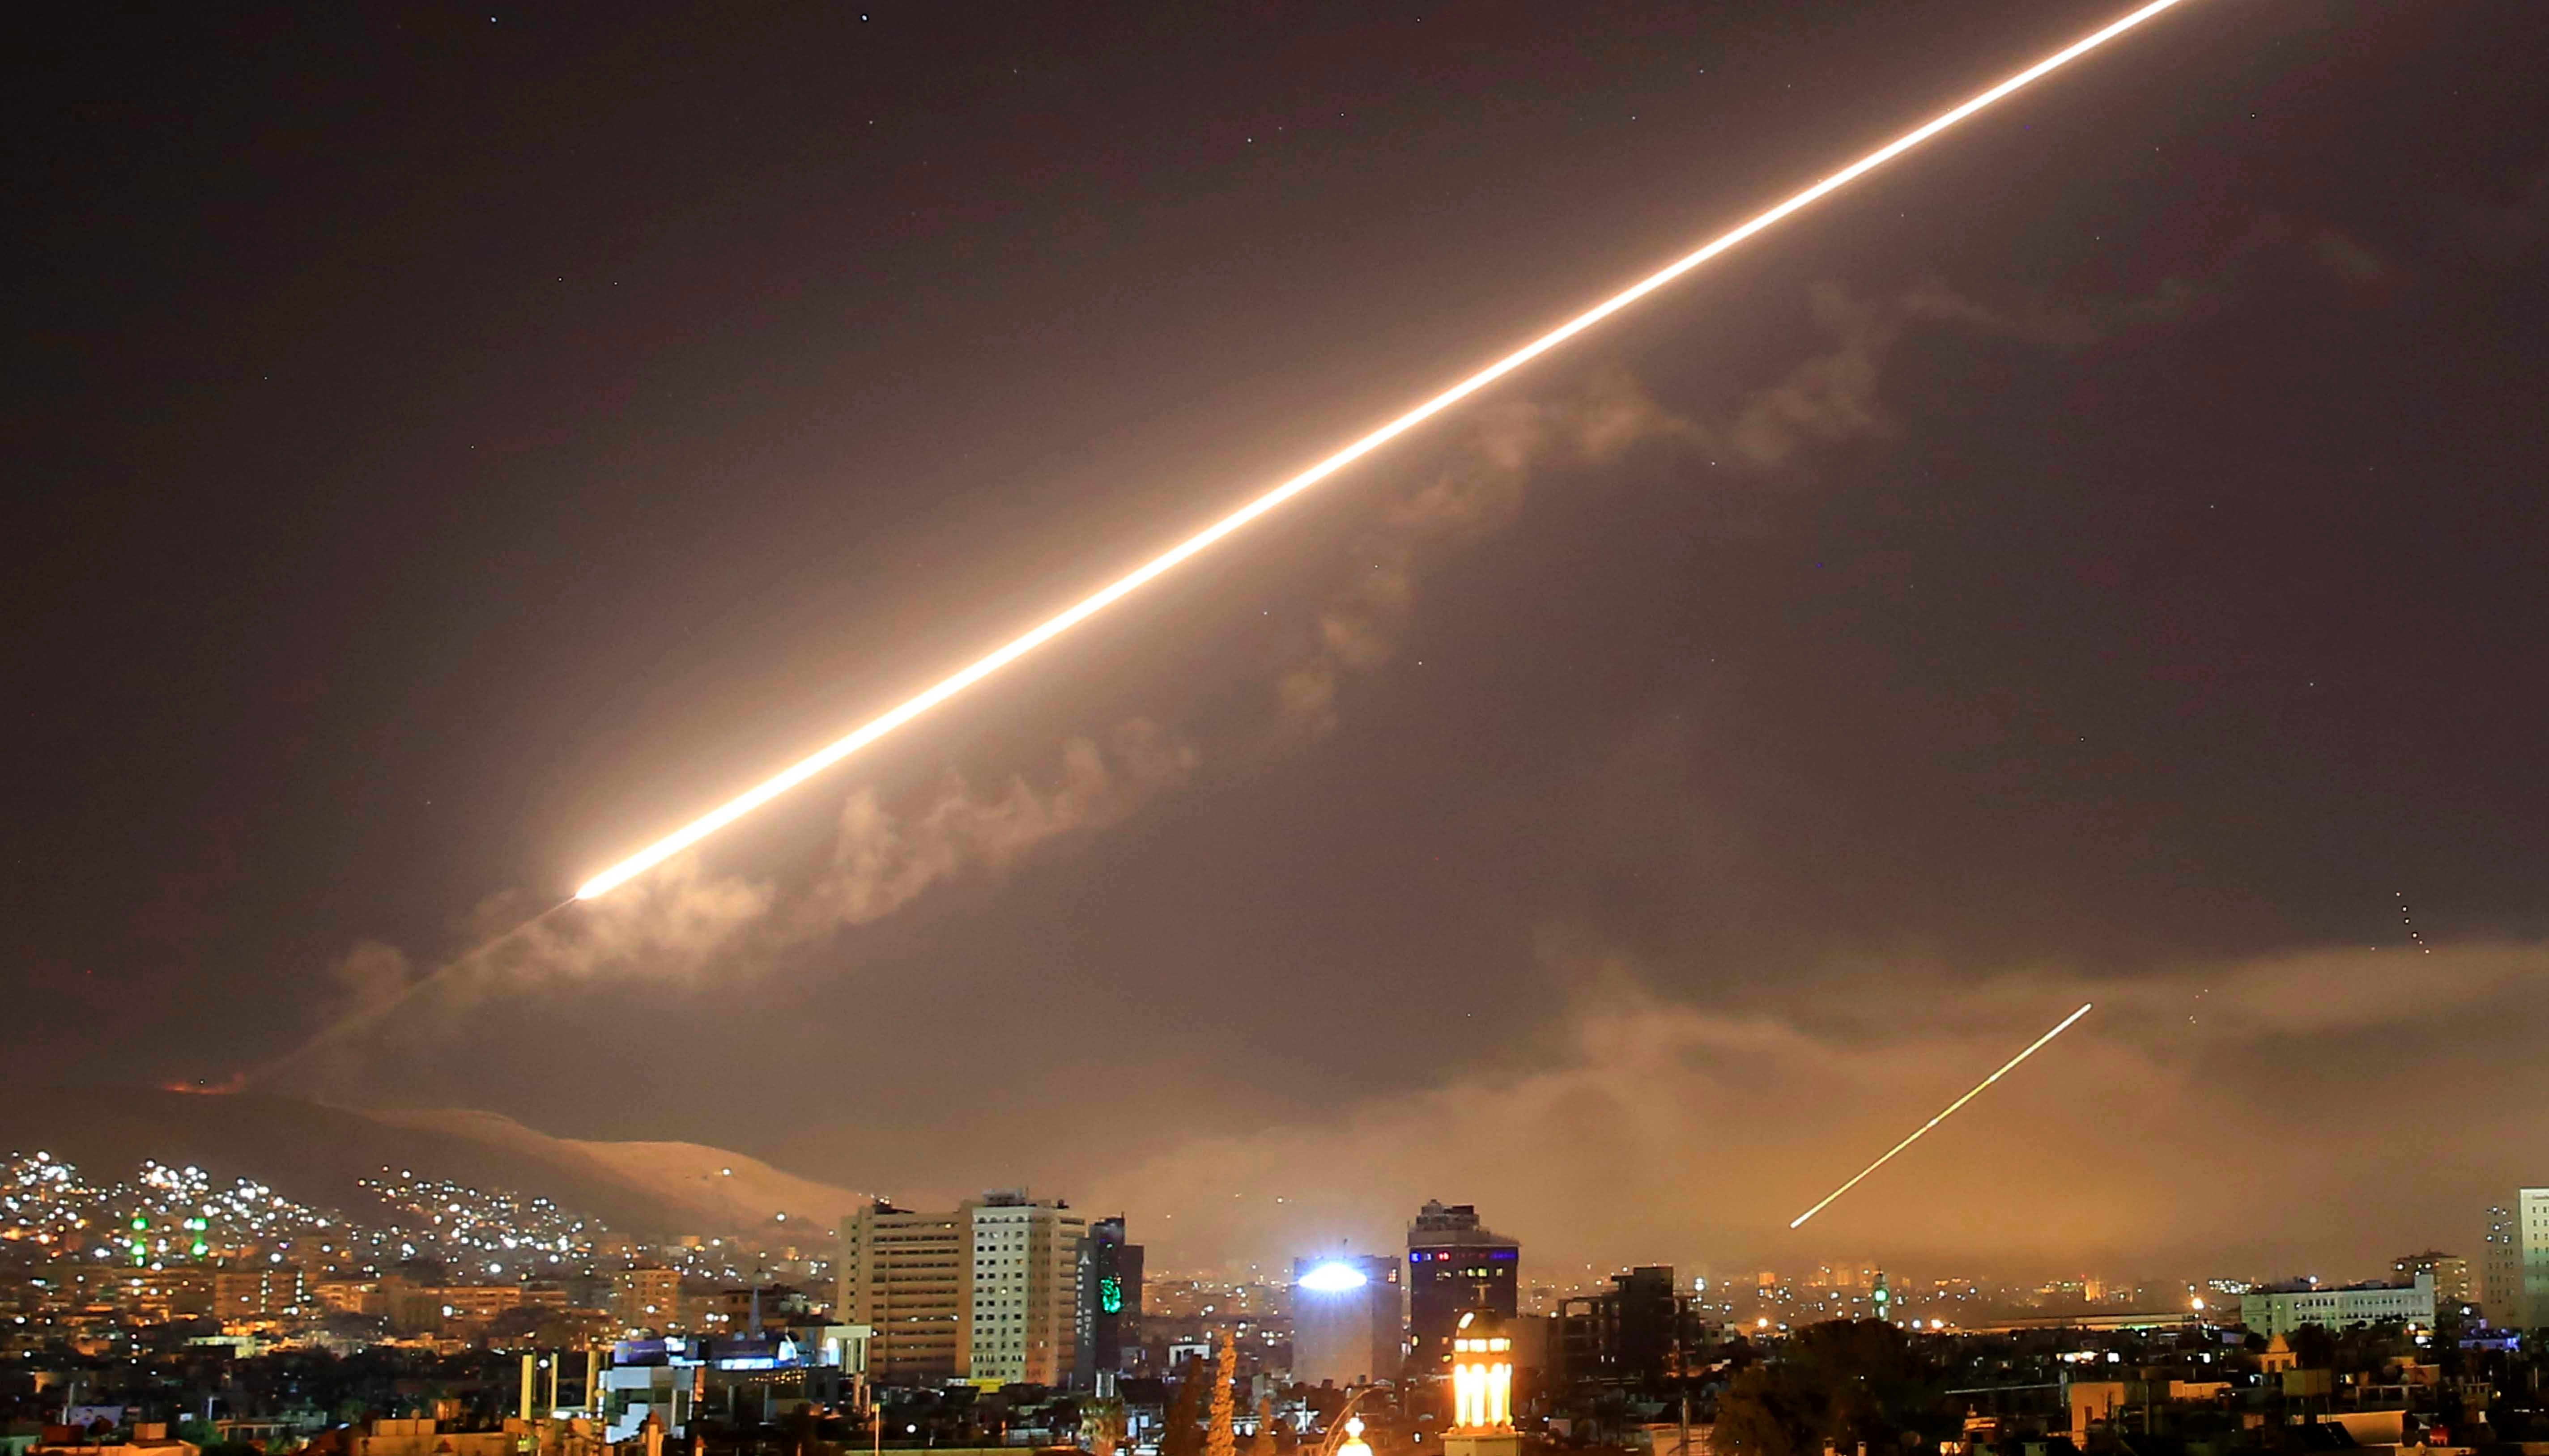 The sky over Syria's capital, Damascus, lights up with surface-to-air missile fire as the U.S. launches an attack on Syria. President Trump announced airstrikes in retaliation for the country's alleged use of chemical weapons. (AP Photo/Hassan Ammar)